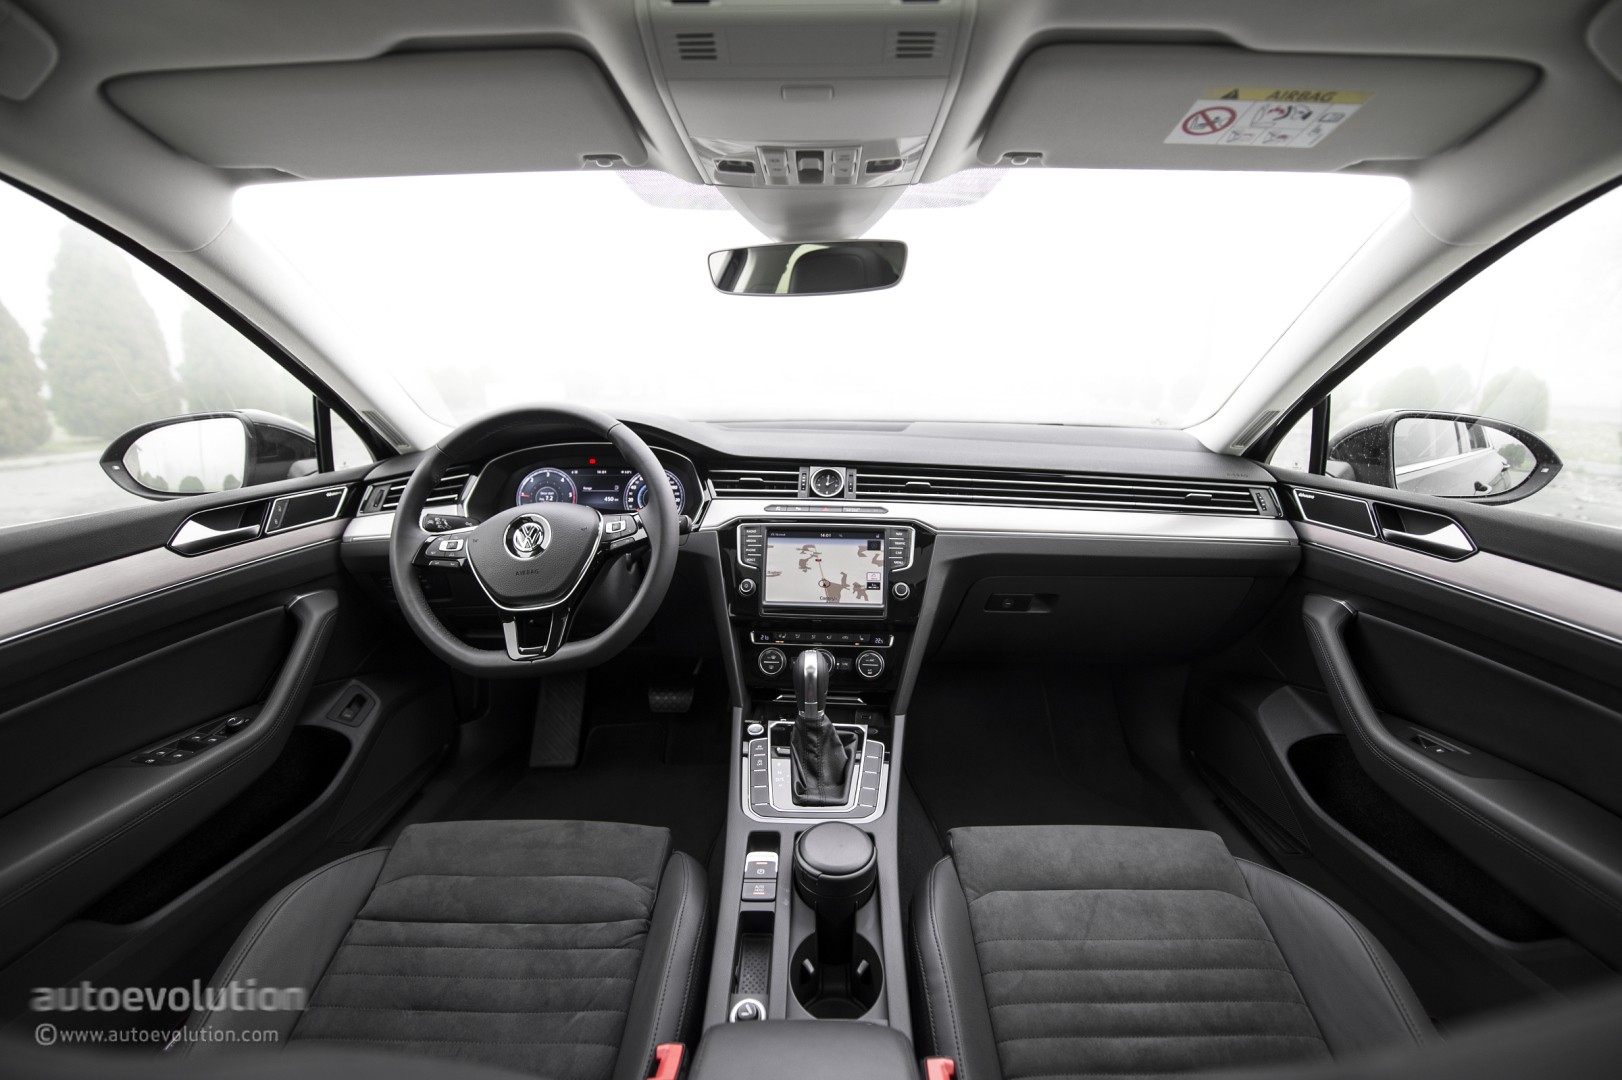 2015 VOLKSWAGEN Passat Review - autoevolution